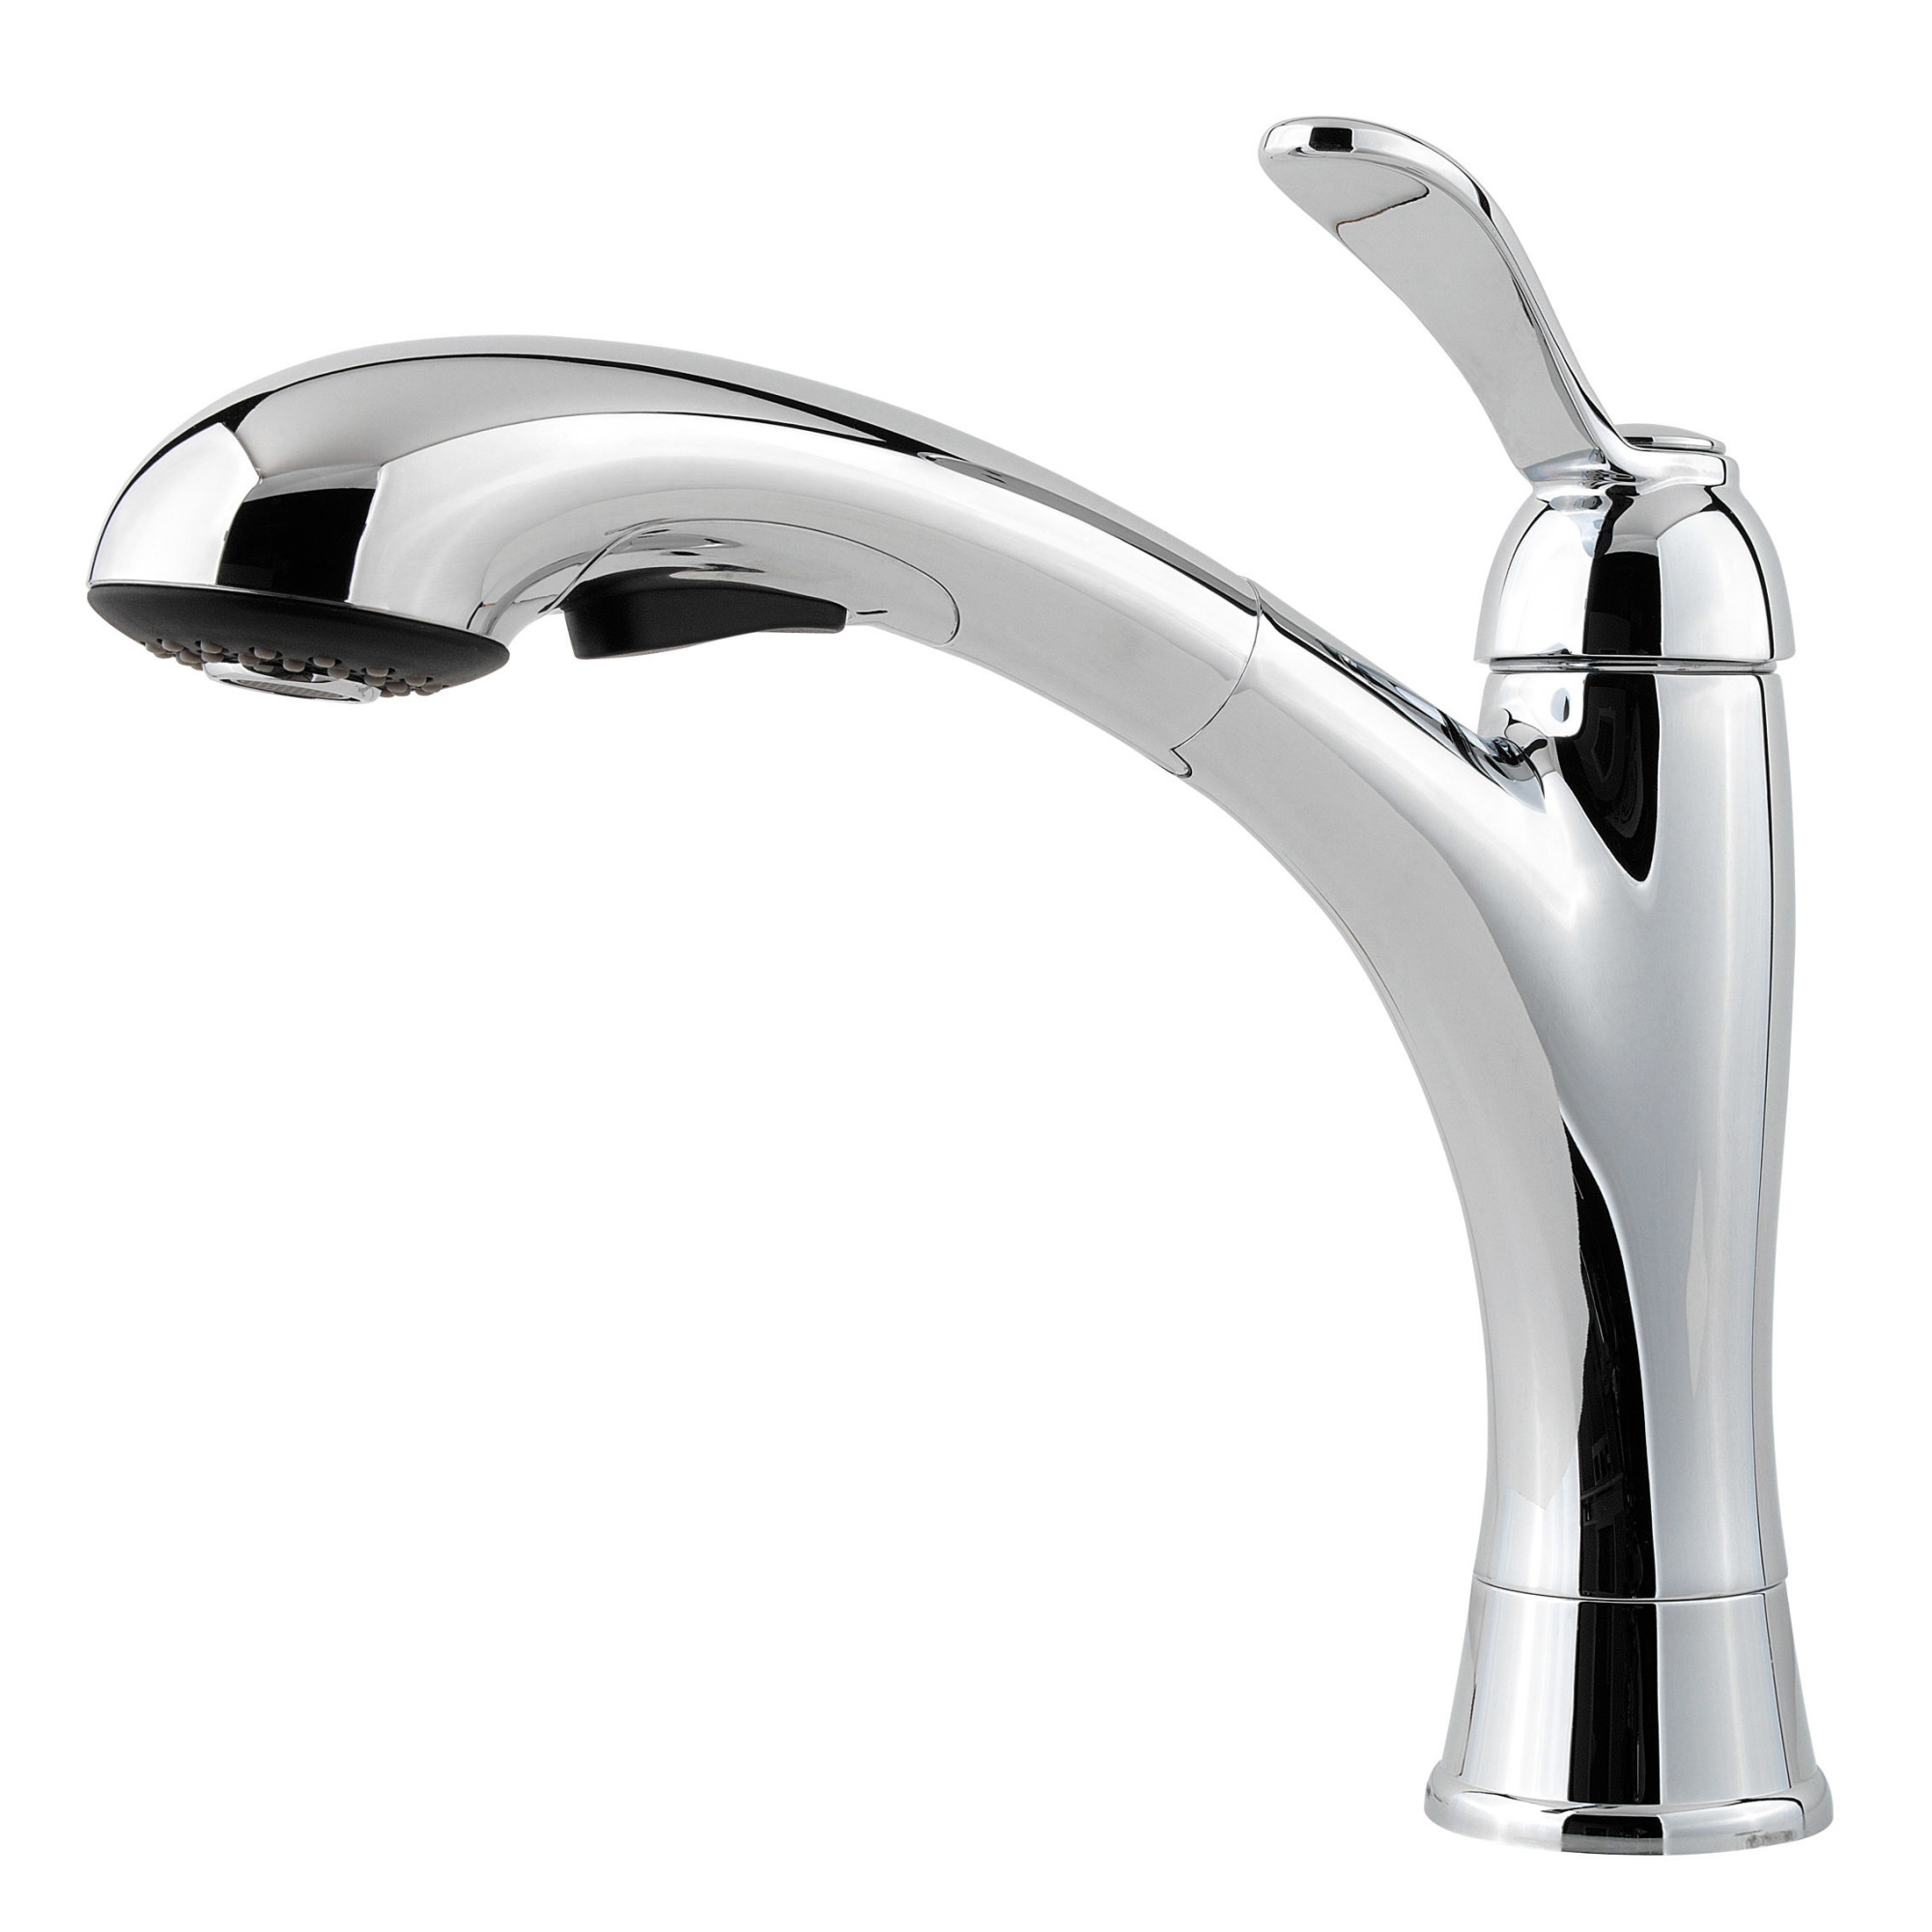 Pfister Marielle Kitchen Faucet With 2 Function Pullout Spray Available In Various Colors Walmart Com Walmart Com